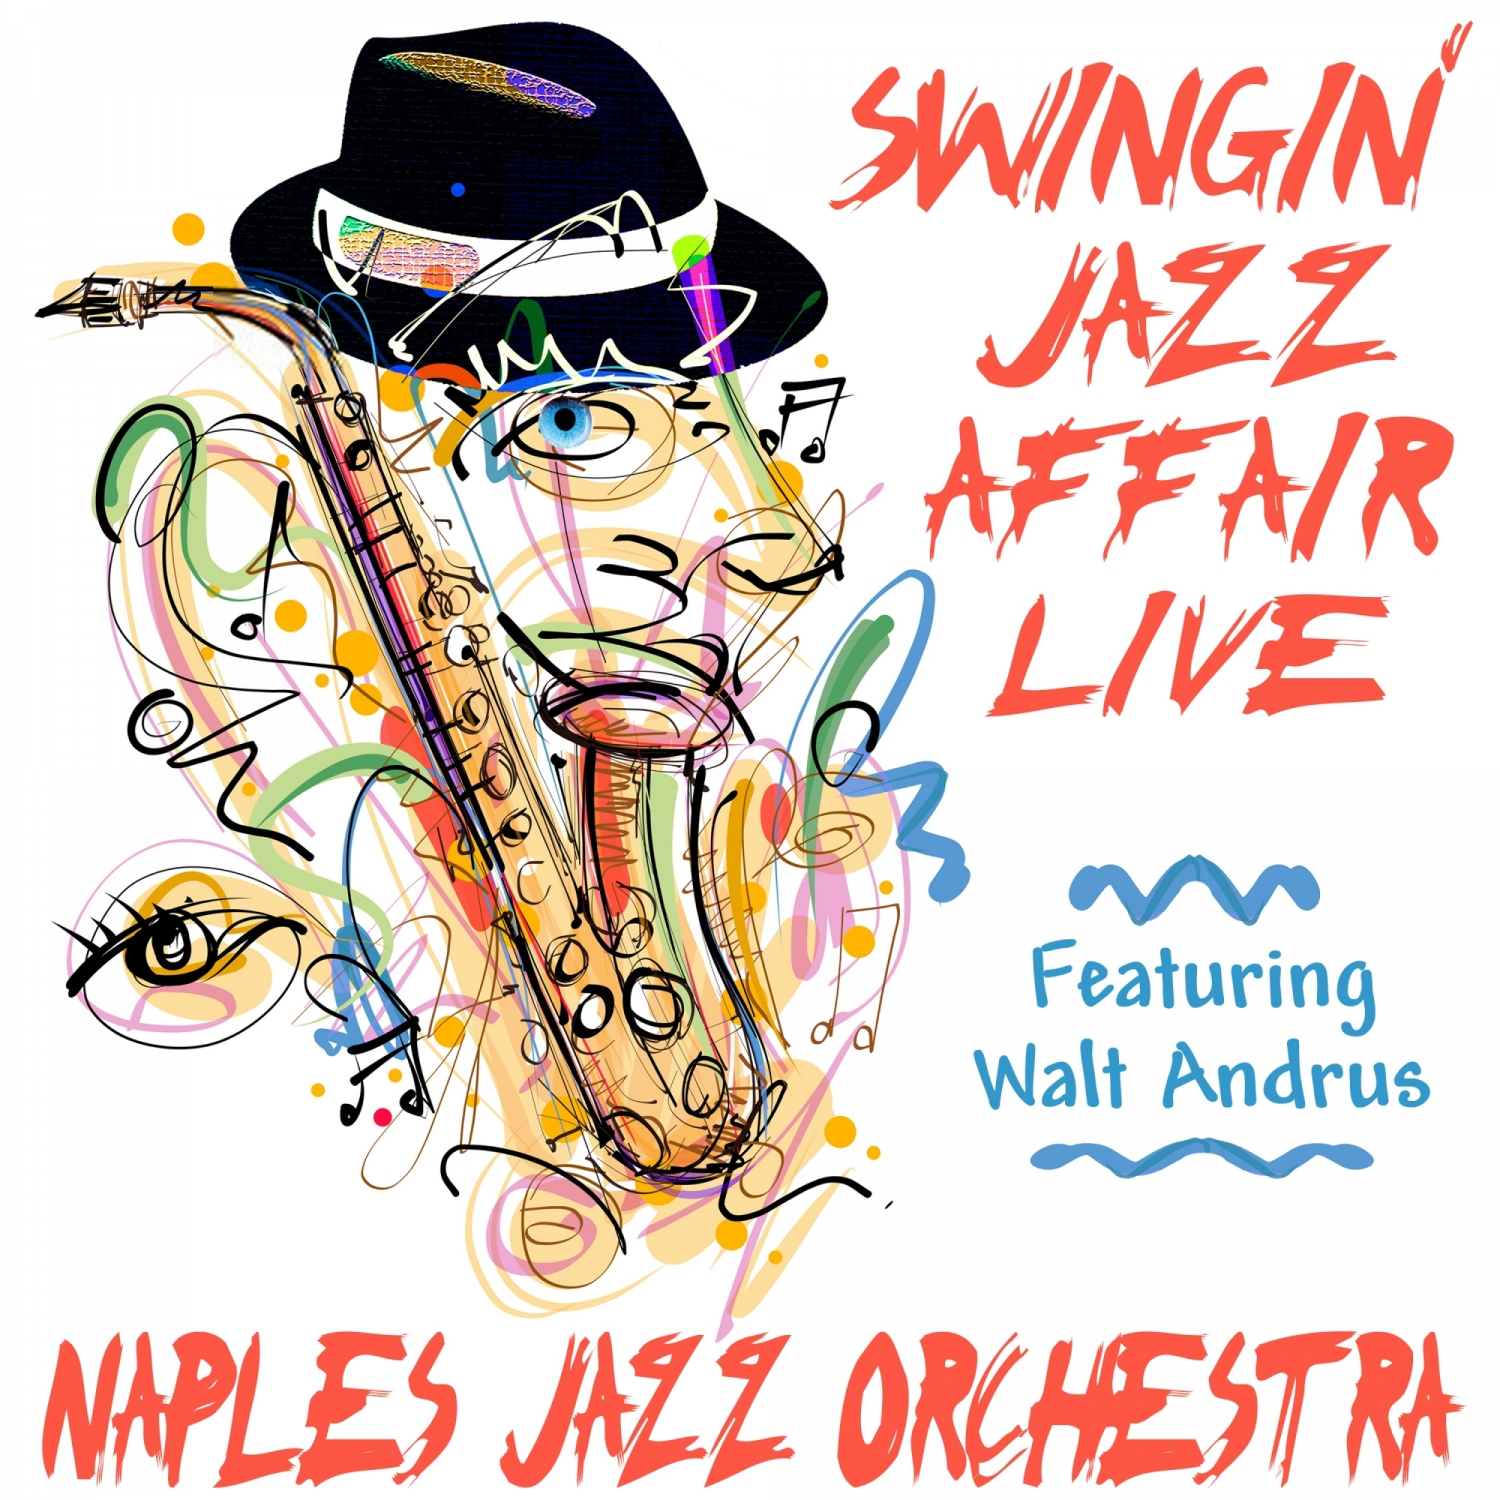 The Naples Jazz Orchestra  - For Once in My Life  (feat. Walt Andrus)